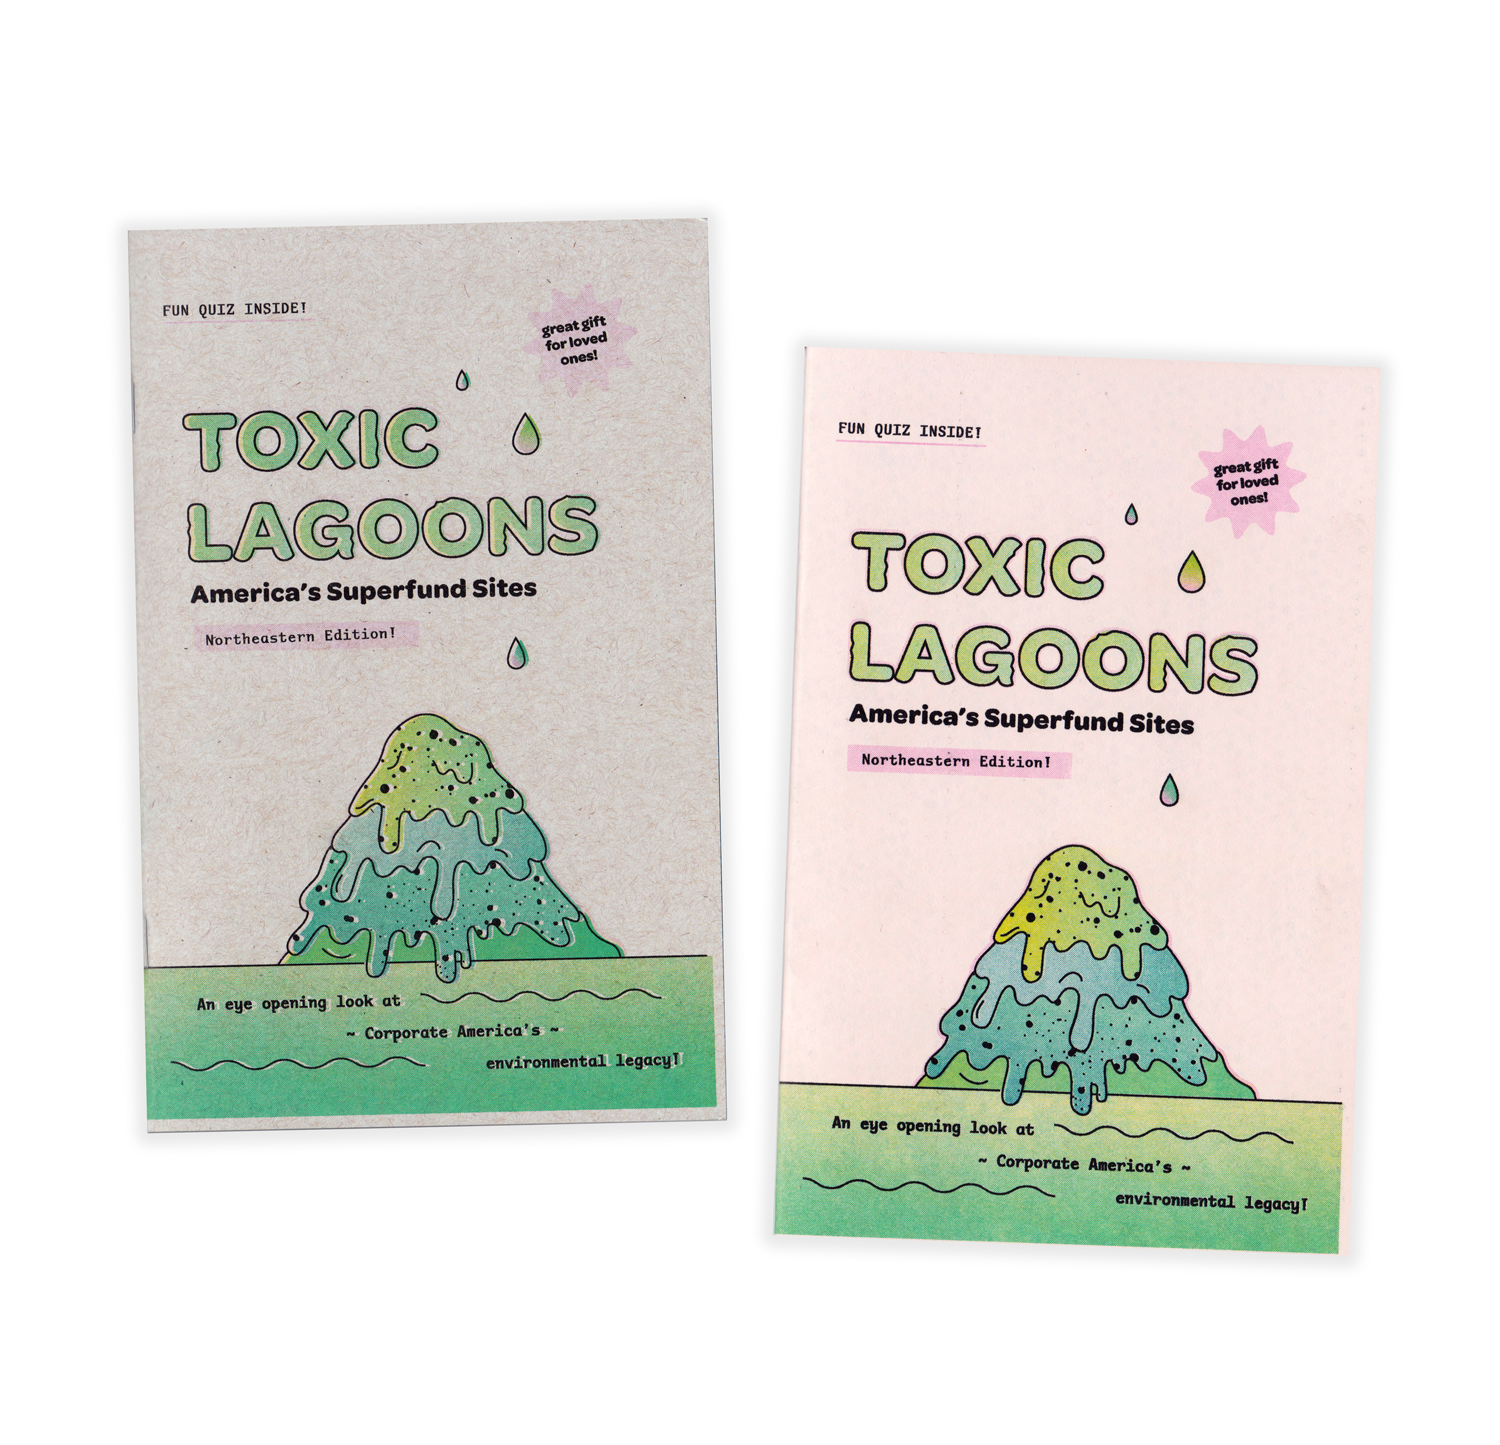 Toxic Lagoon Superfund Zine - Northeastern Edition!